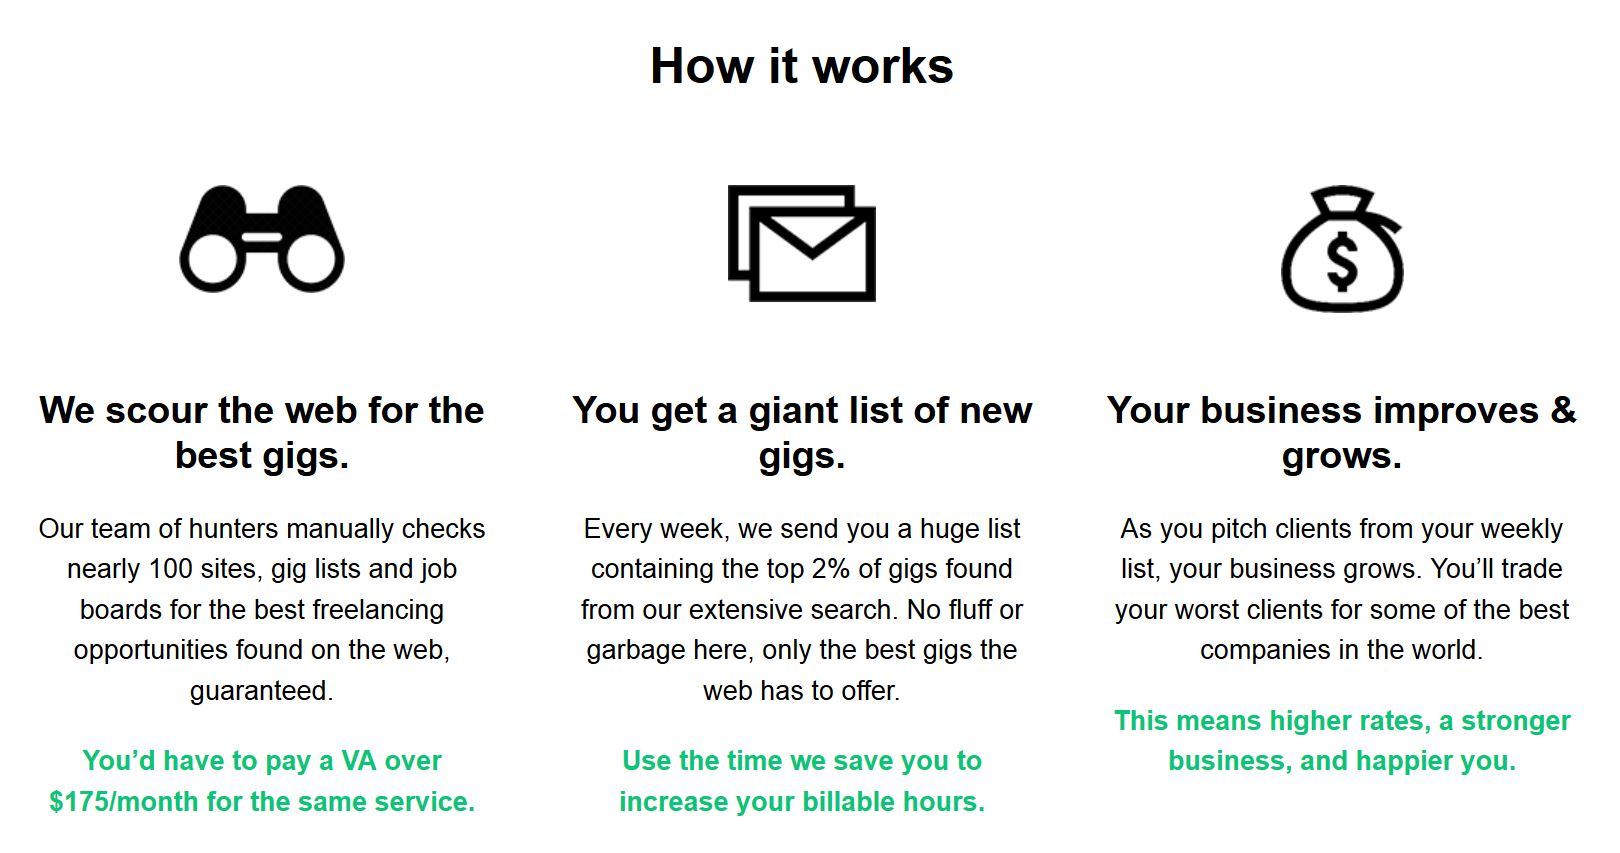 68 Freelance job sites to help you find work and quit your day job